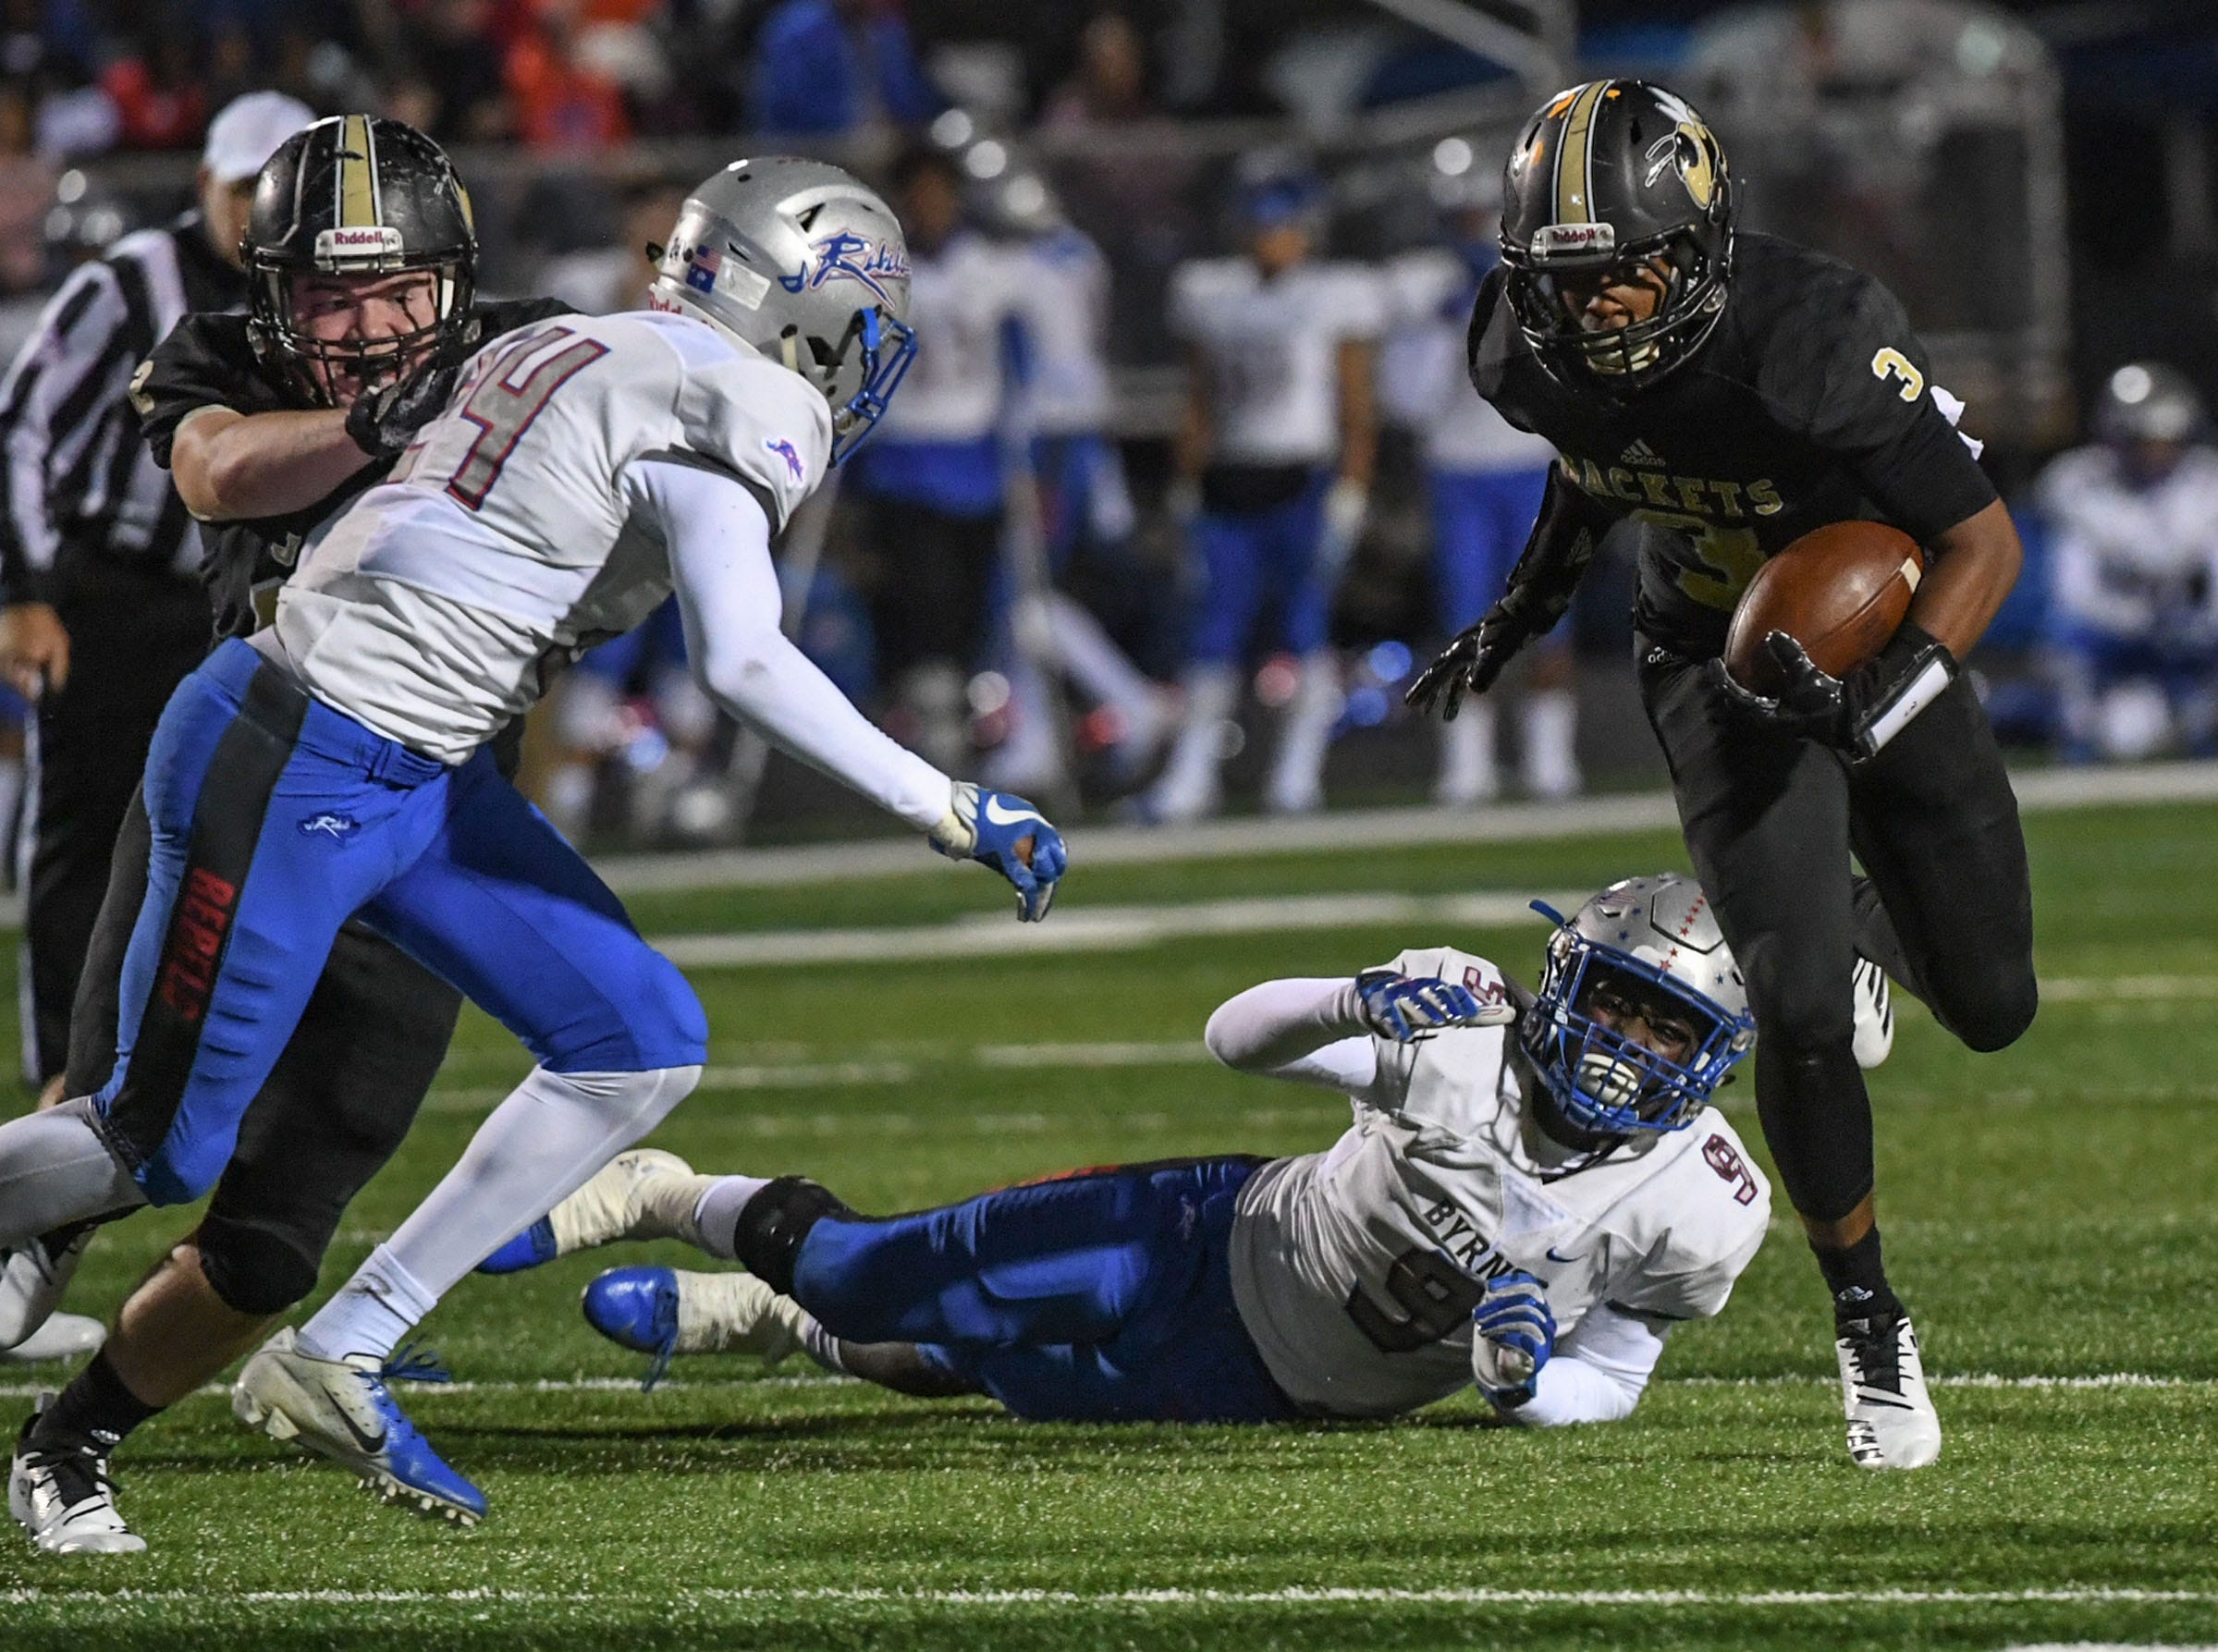 TL Hanna sophomore Jeremiah Hudson (3) runs near Byrnes senior Jojo Irby (9) during the second quarter of the Class AAAAA state playoffs at TL Hanna High School in Anderson on Friday, November 30, 2018.